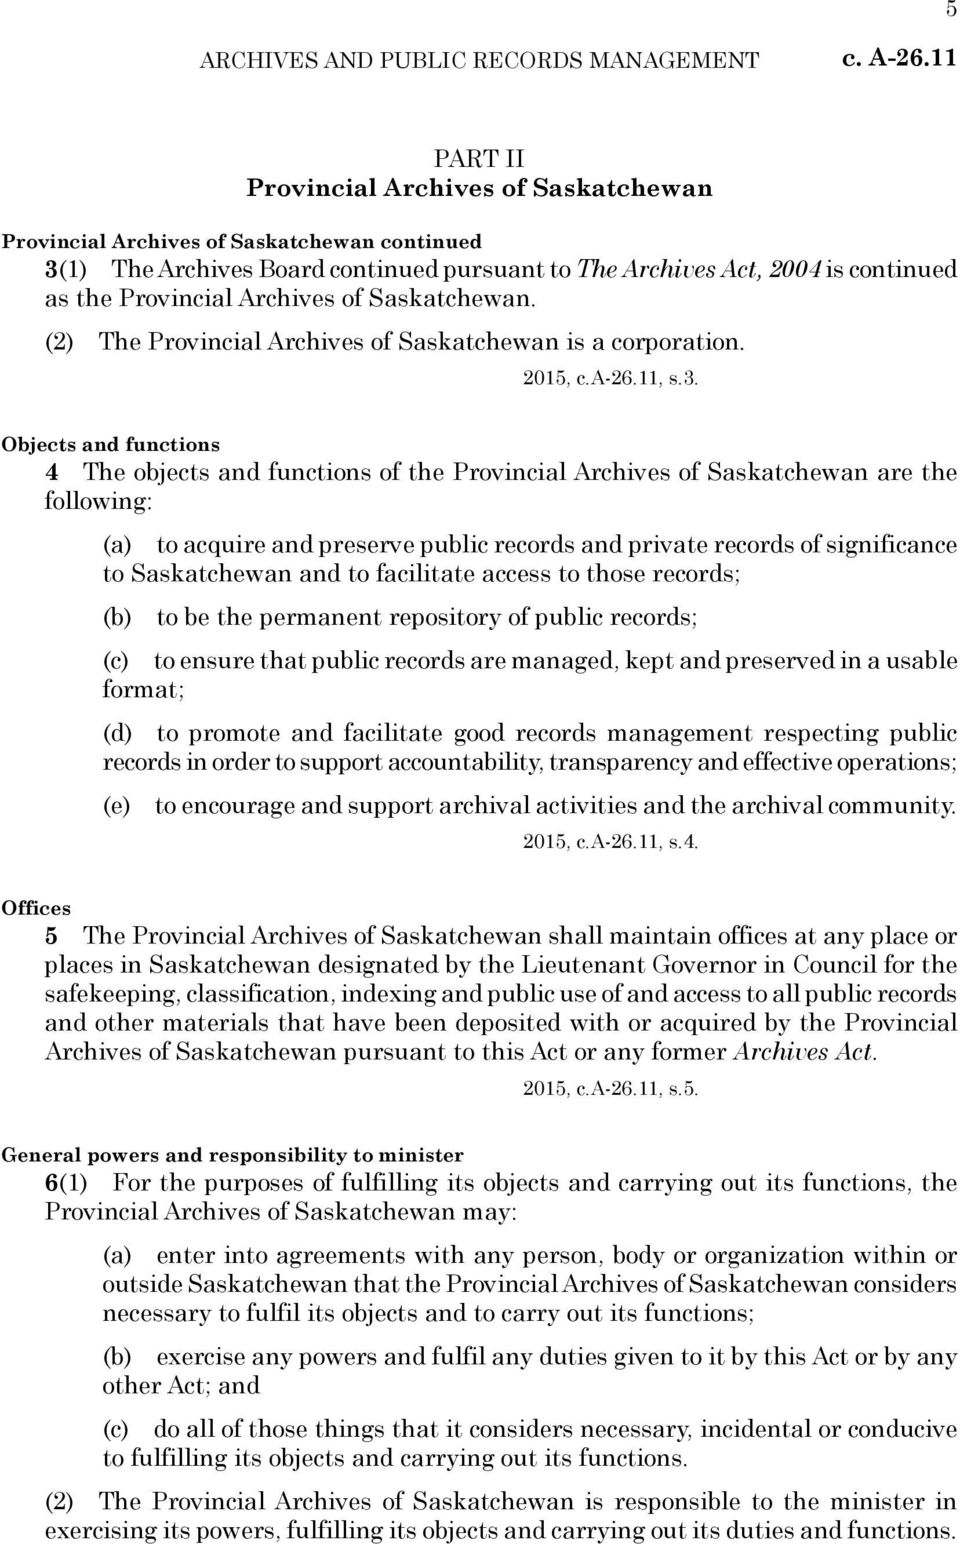 Archives of Saskatchewan. (2) The Provincial Archives of Saskatchewan is a corporation. 2015, c.a-26.11, s.3.